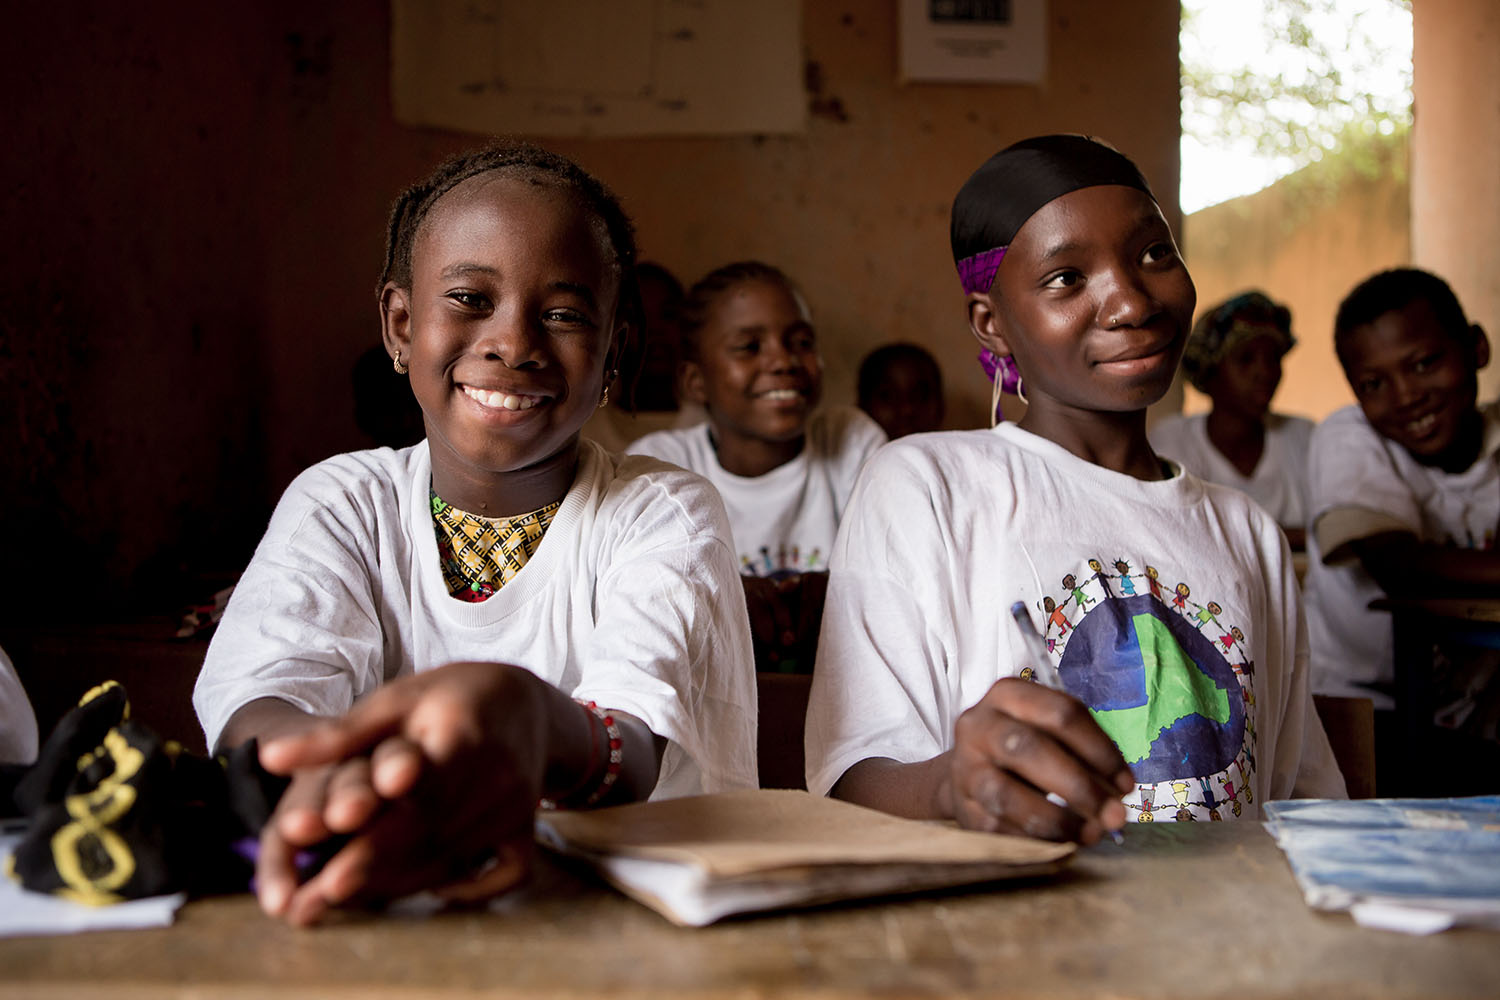 Adeoula and a classmate (RELEASED) enjoy class together in the Accelerated Learning Centre of Bourougoundye, Gao where ongoing conflicts in the northern regions of Mali continue to have devastating effects education. UNICEF supports the re-opening of scho